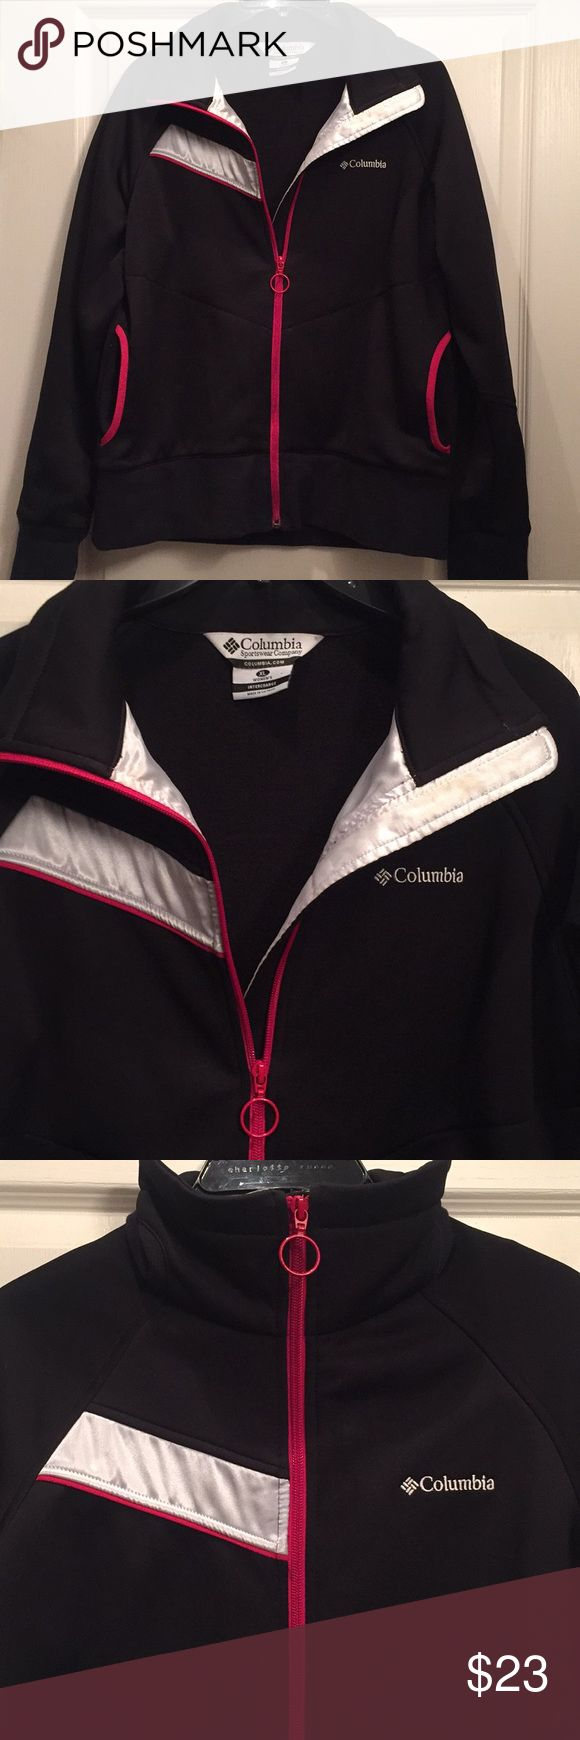 Columbia Interchange Soft Shell Jacket Black Columbia soft shell jacket with red trim. Size XL. Previously loved jacket in great condition! Columbia Jackets & Coats